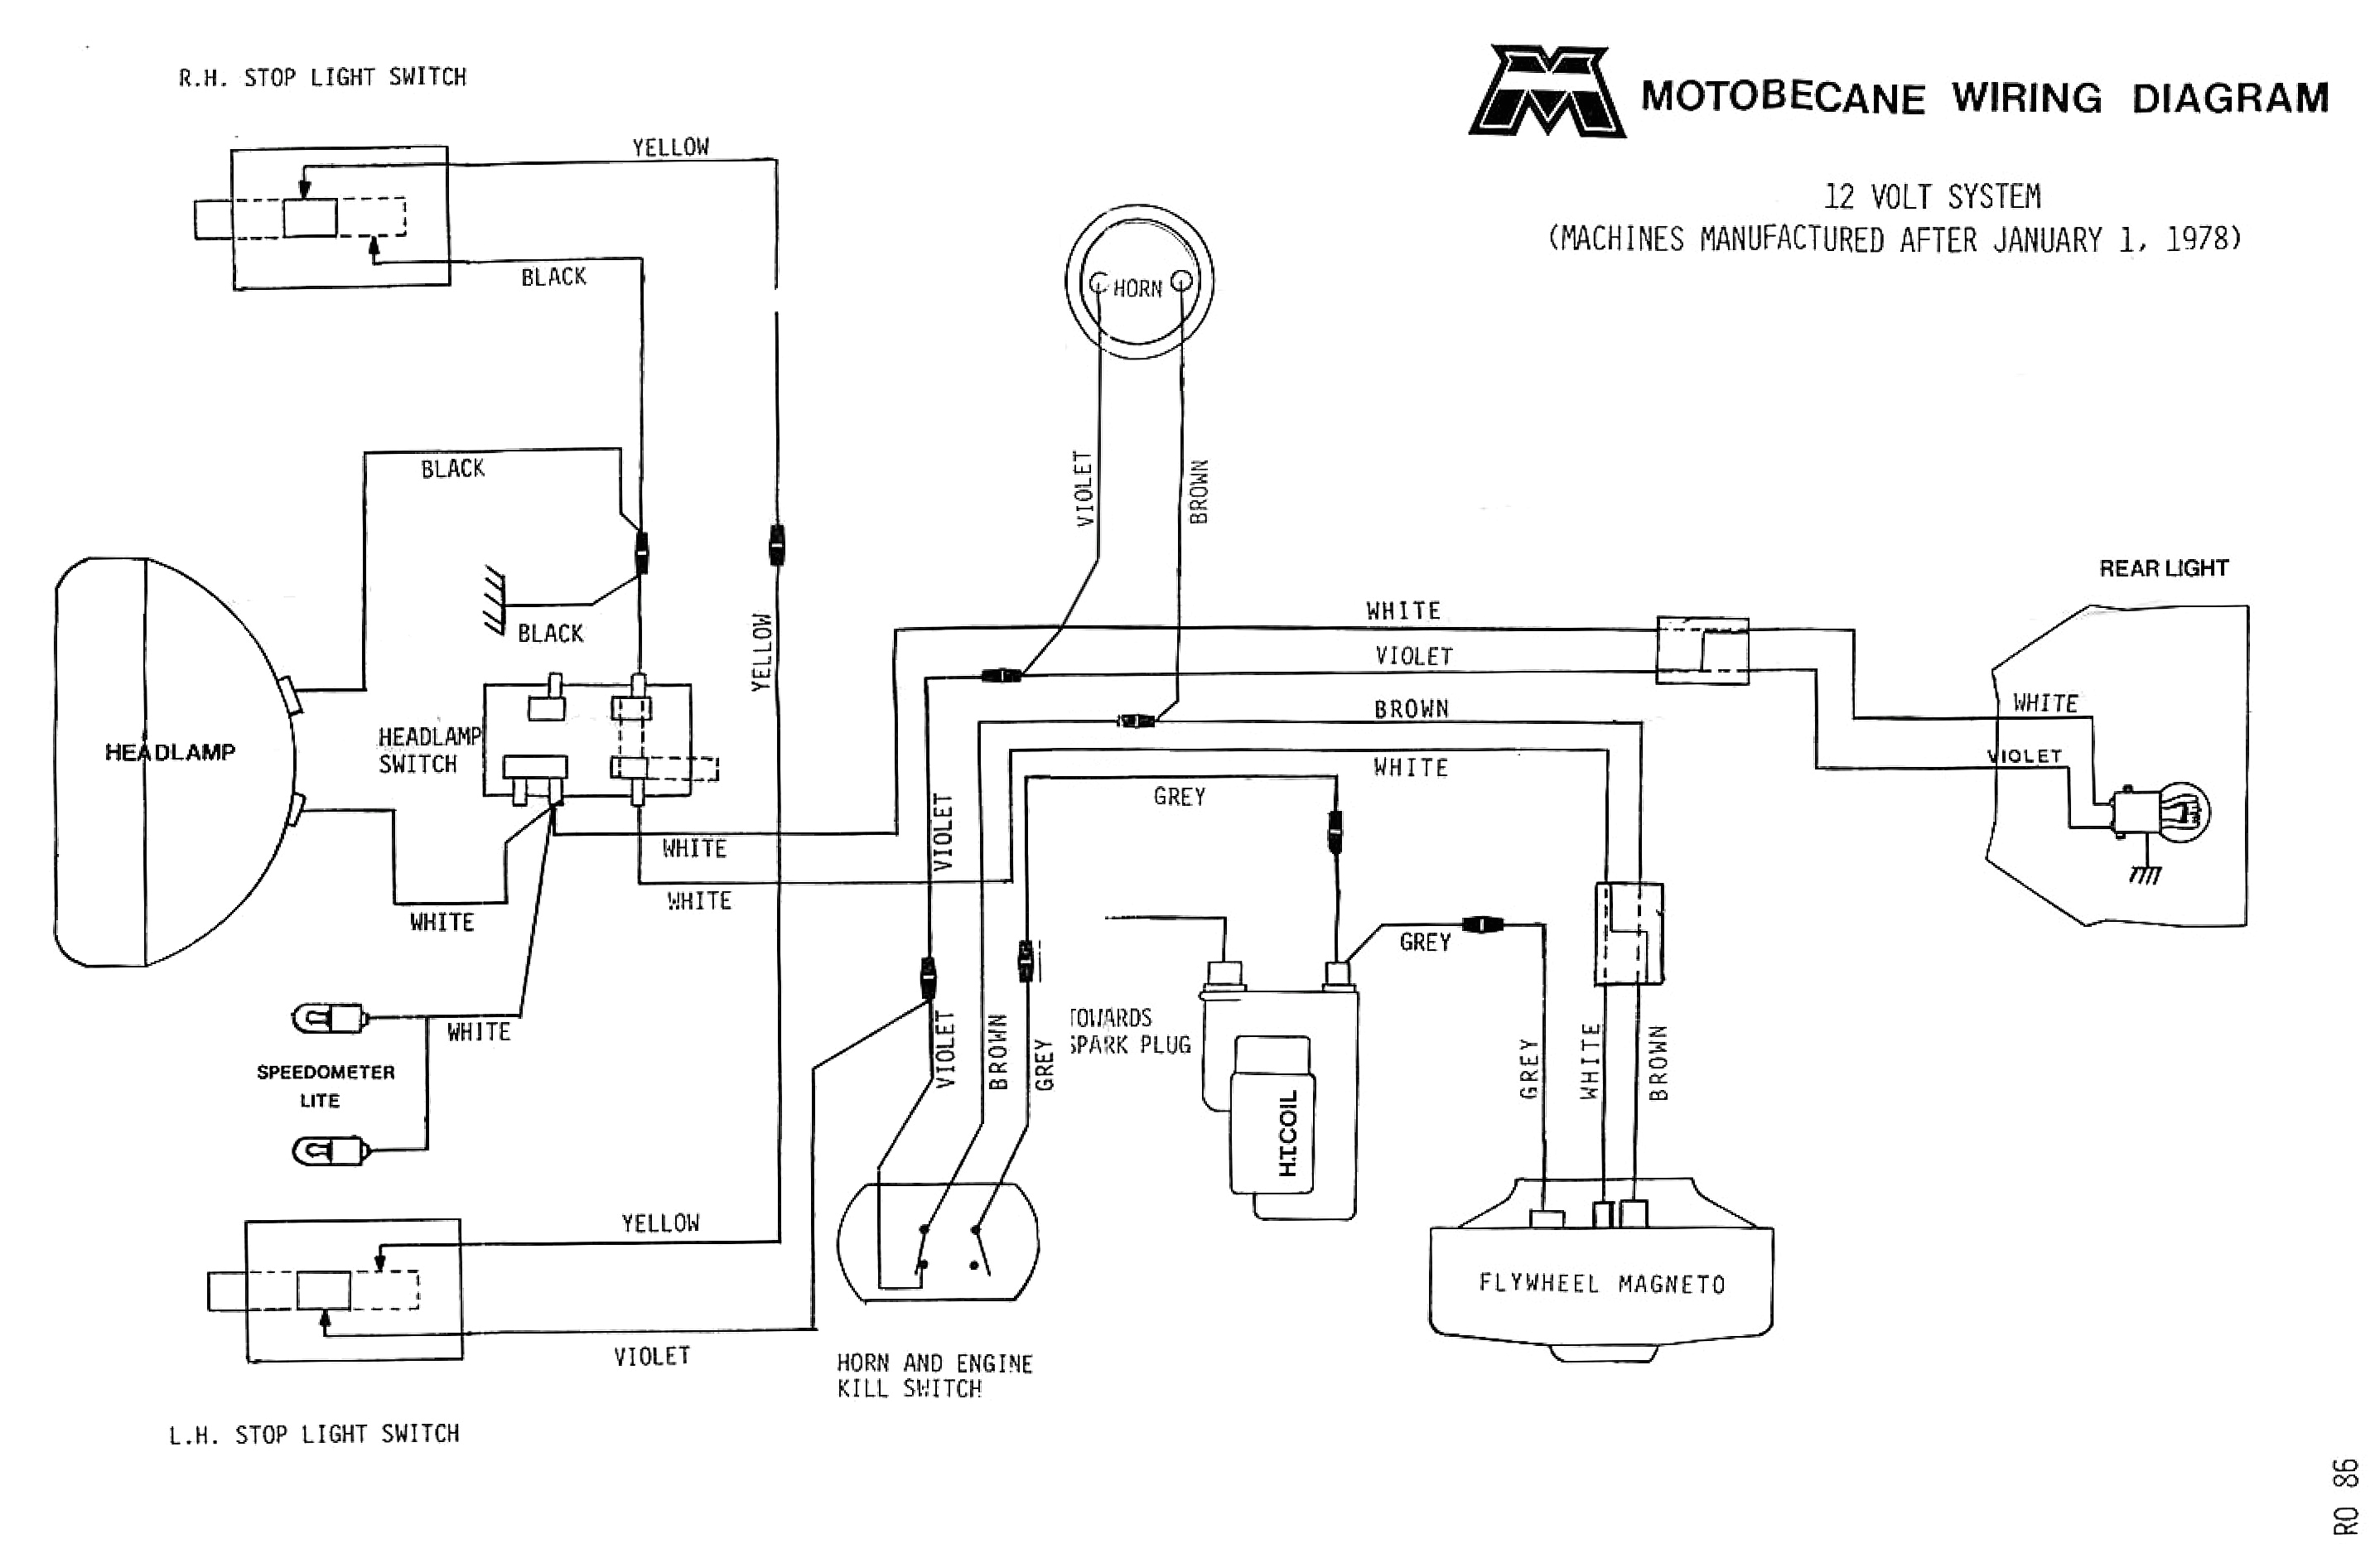 1715 ford tractor wiring diagram blog wiring diagram ford 7610 alternator wiring diagram 1715 ford tractor